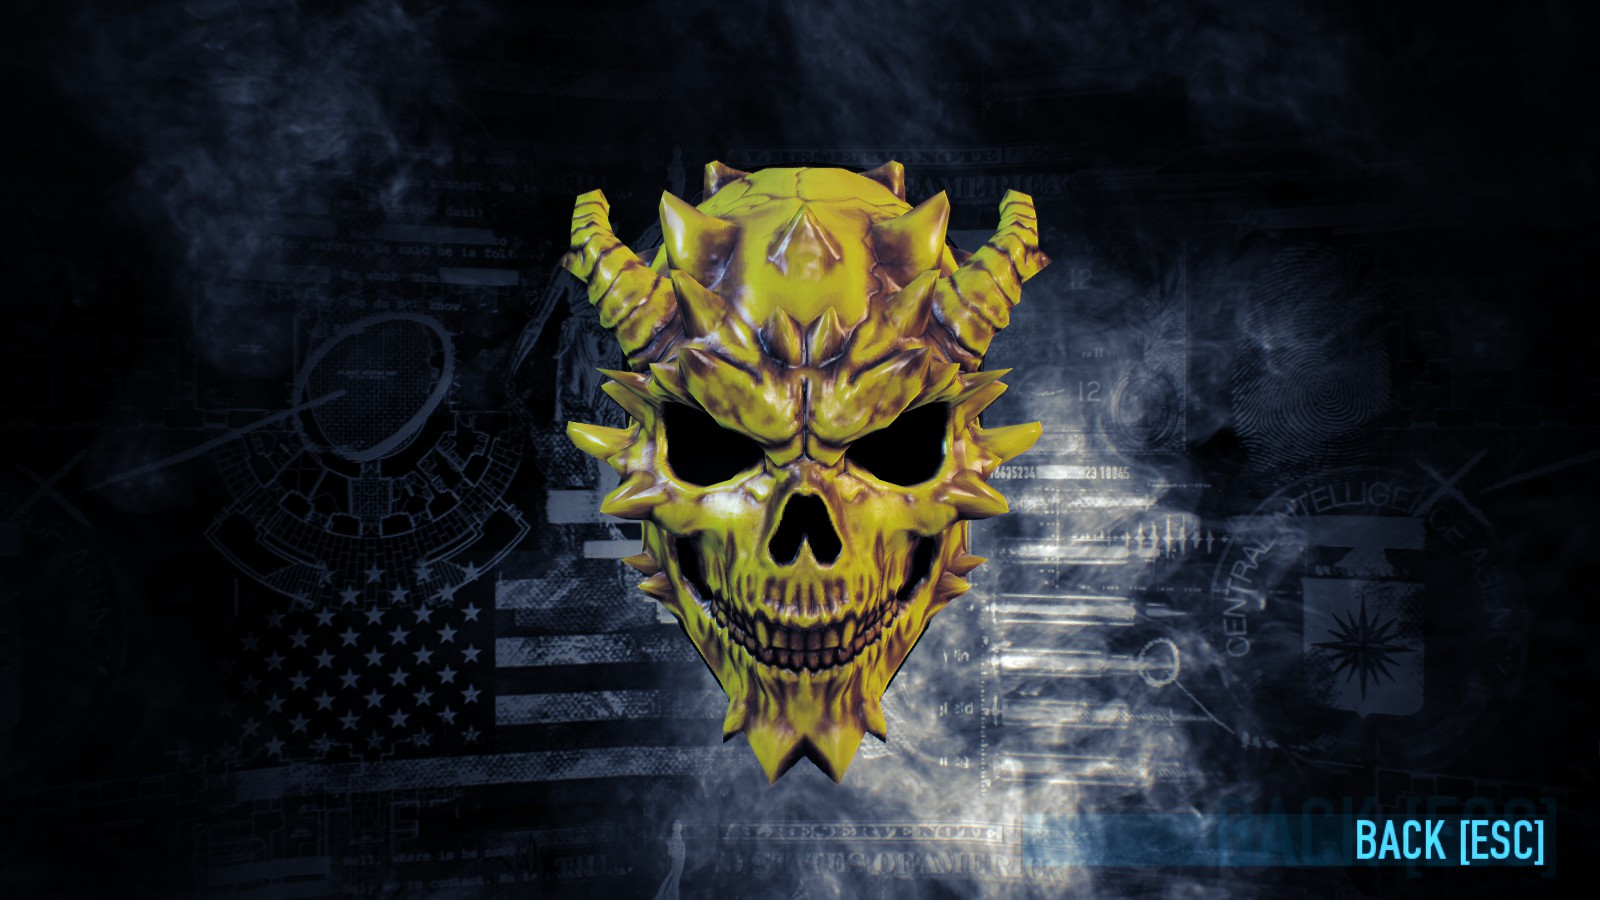 Payday 2 Masks Overkill Store - All About Of Mask